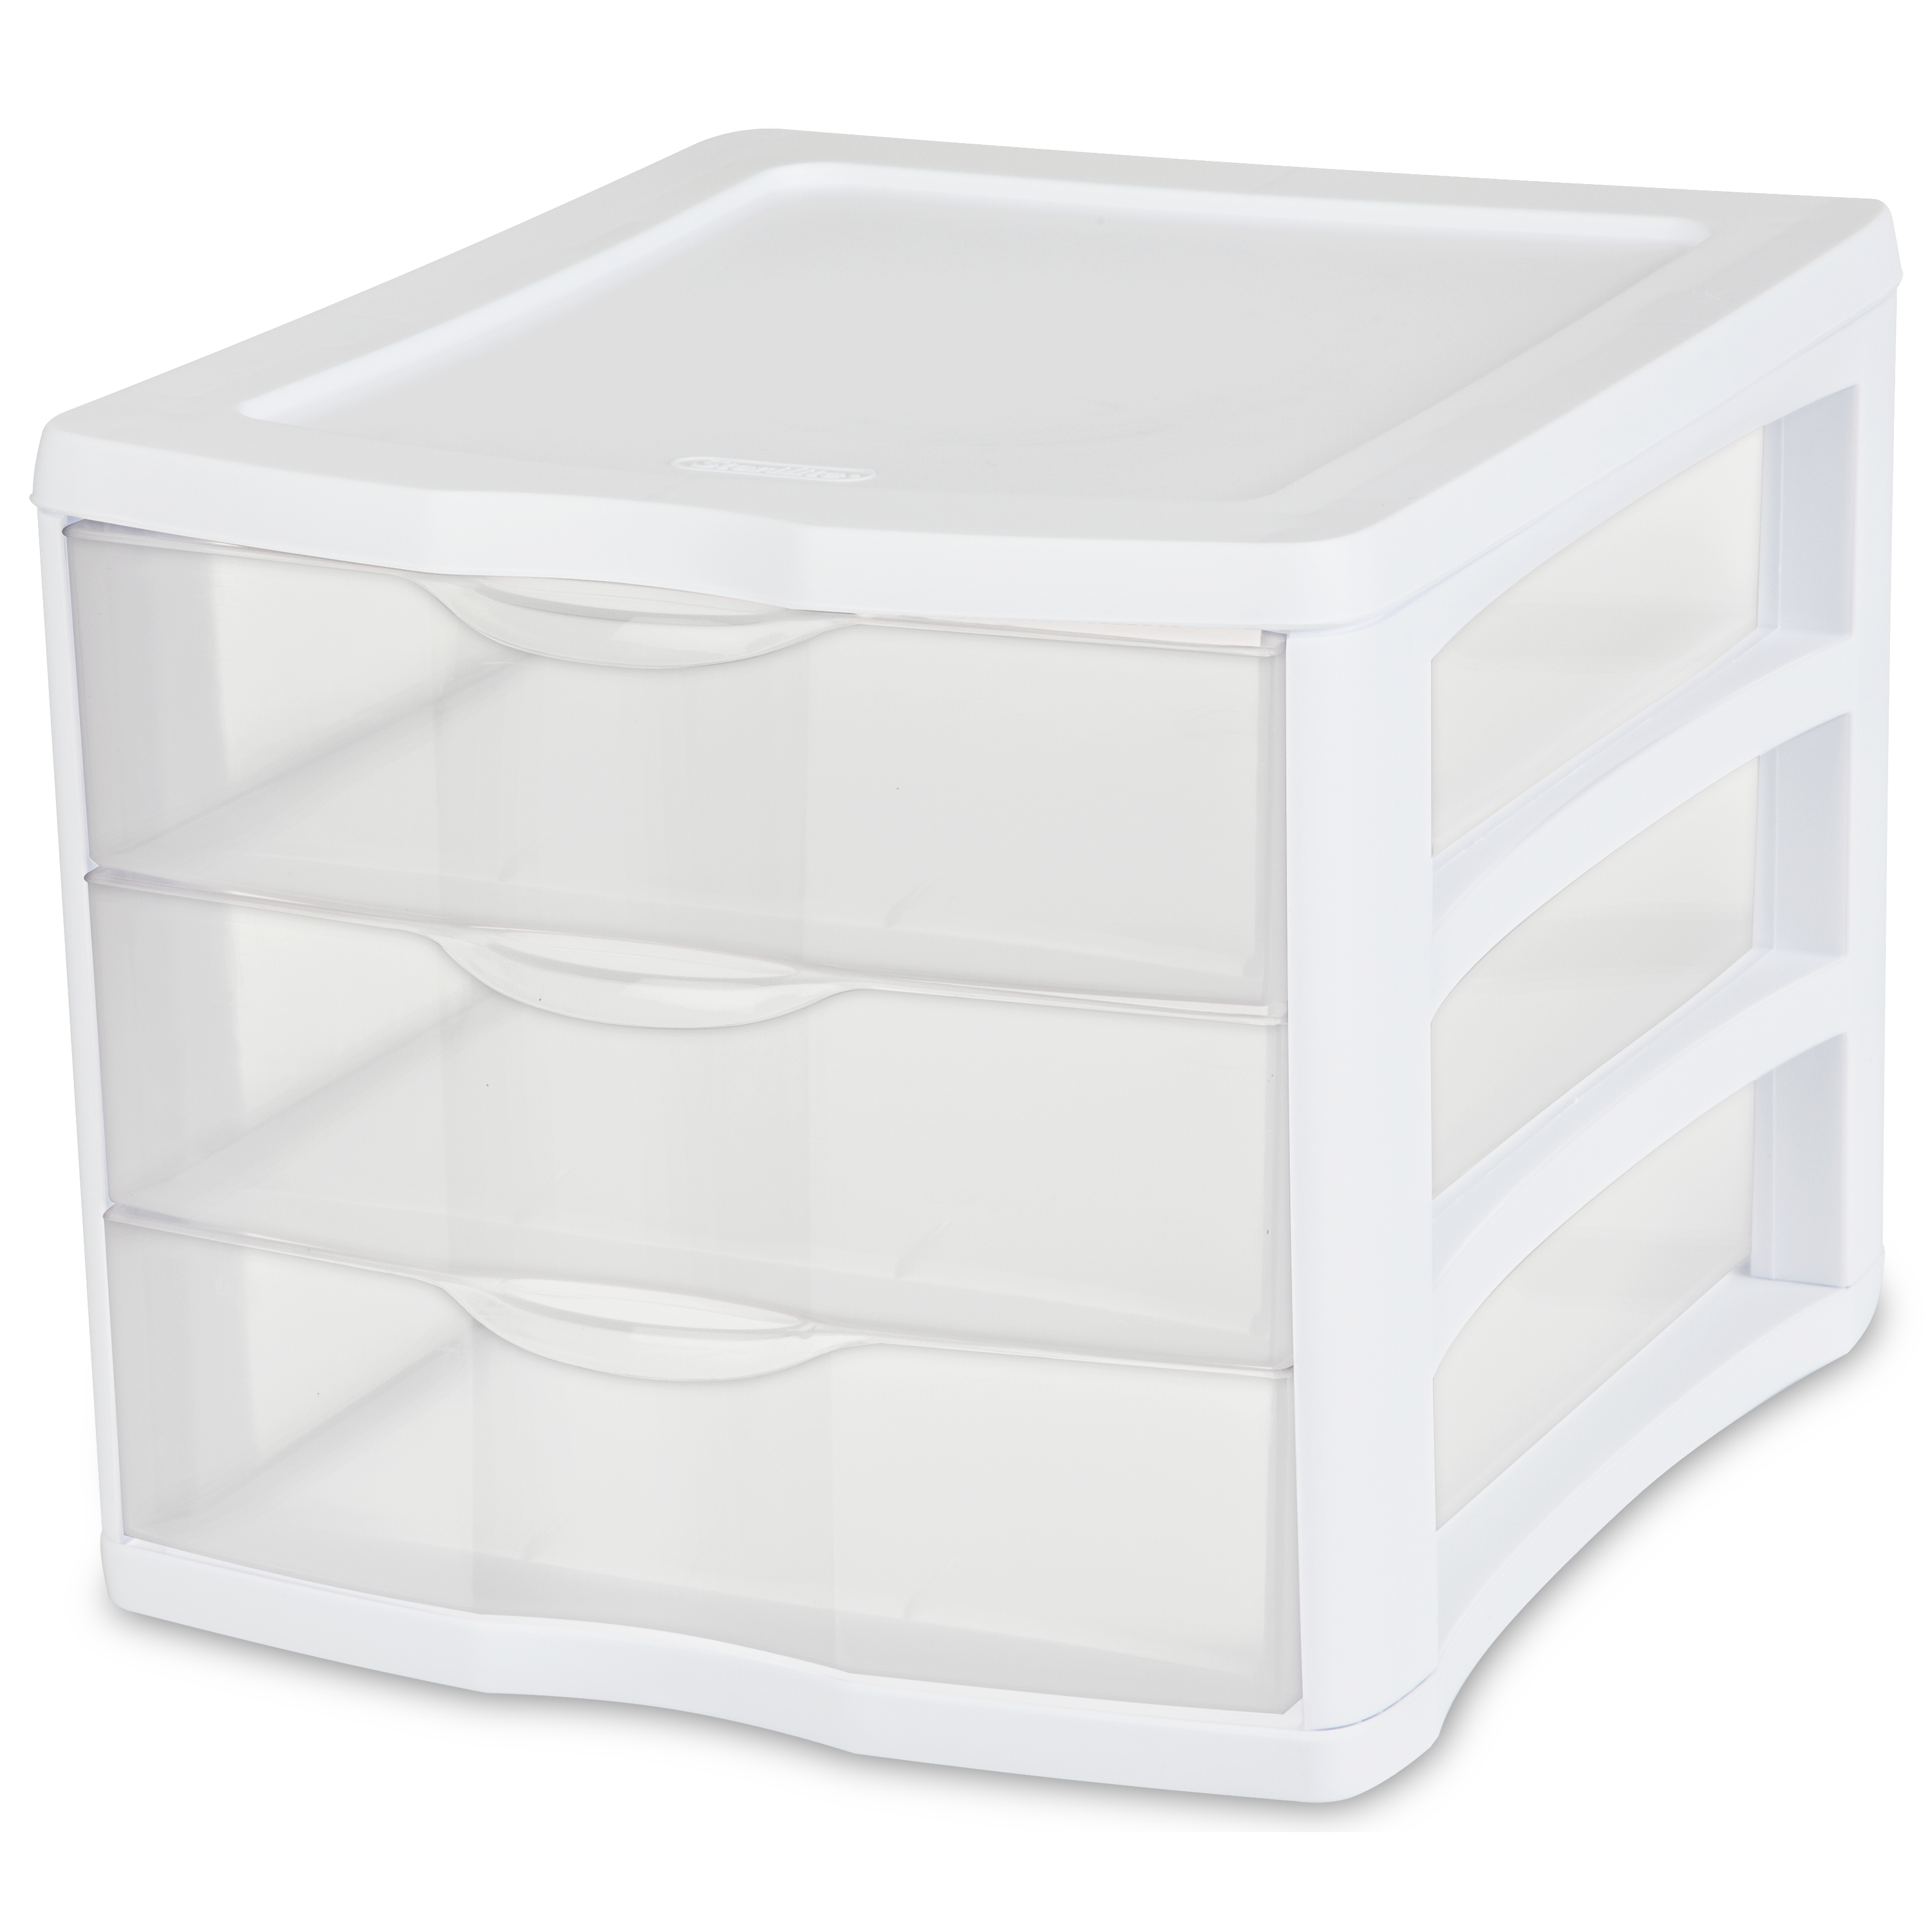 Sterilite 3-Drawer Organizer, White